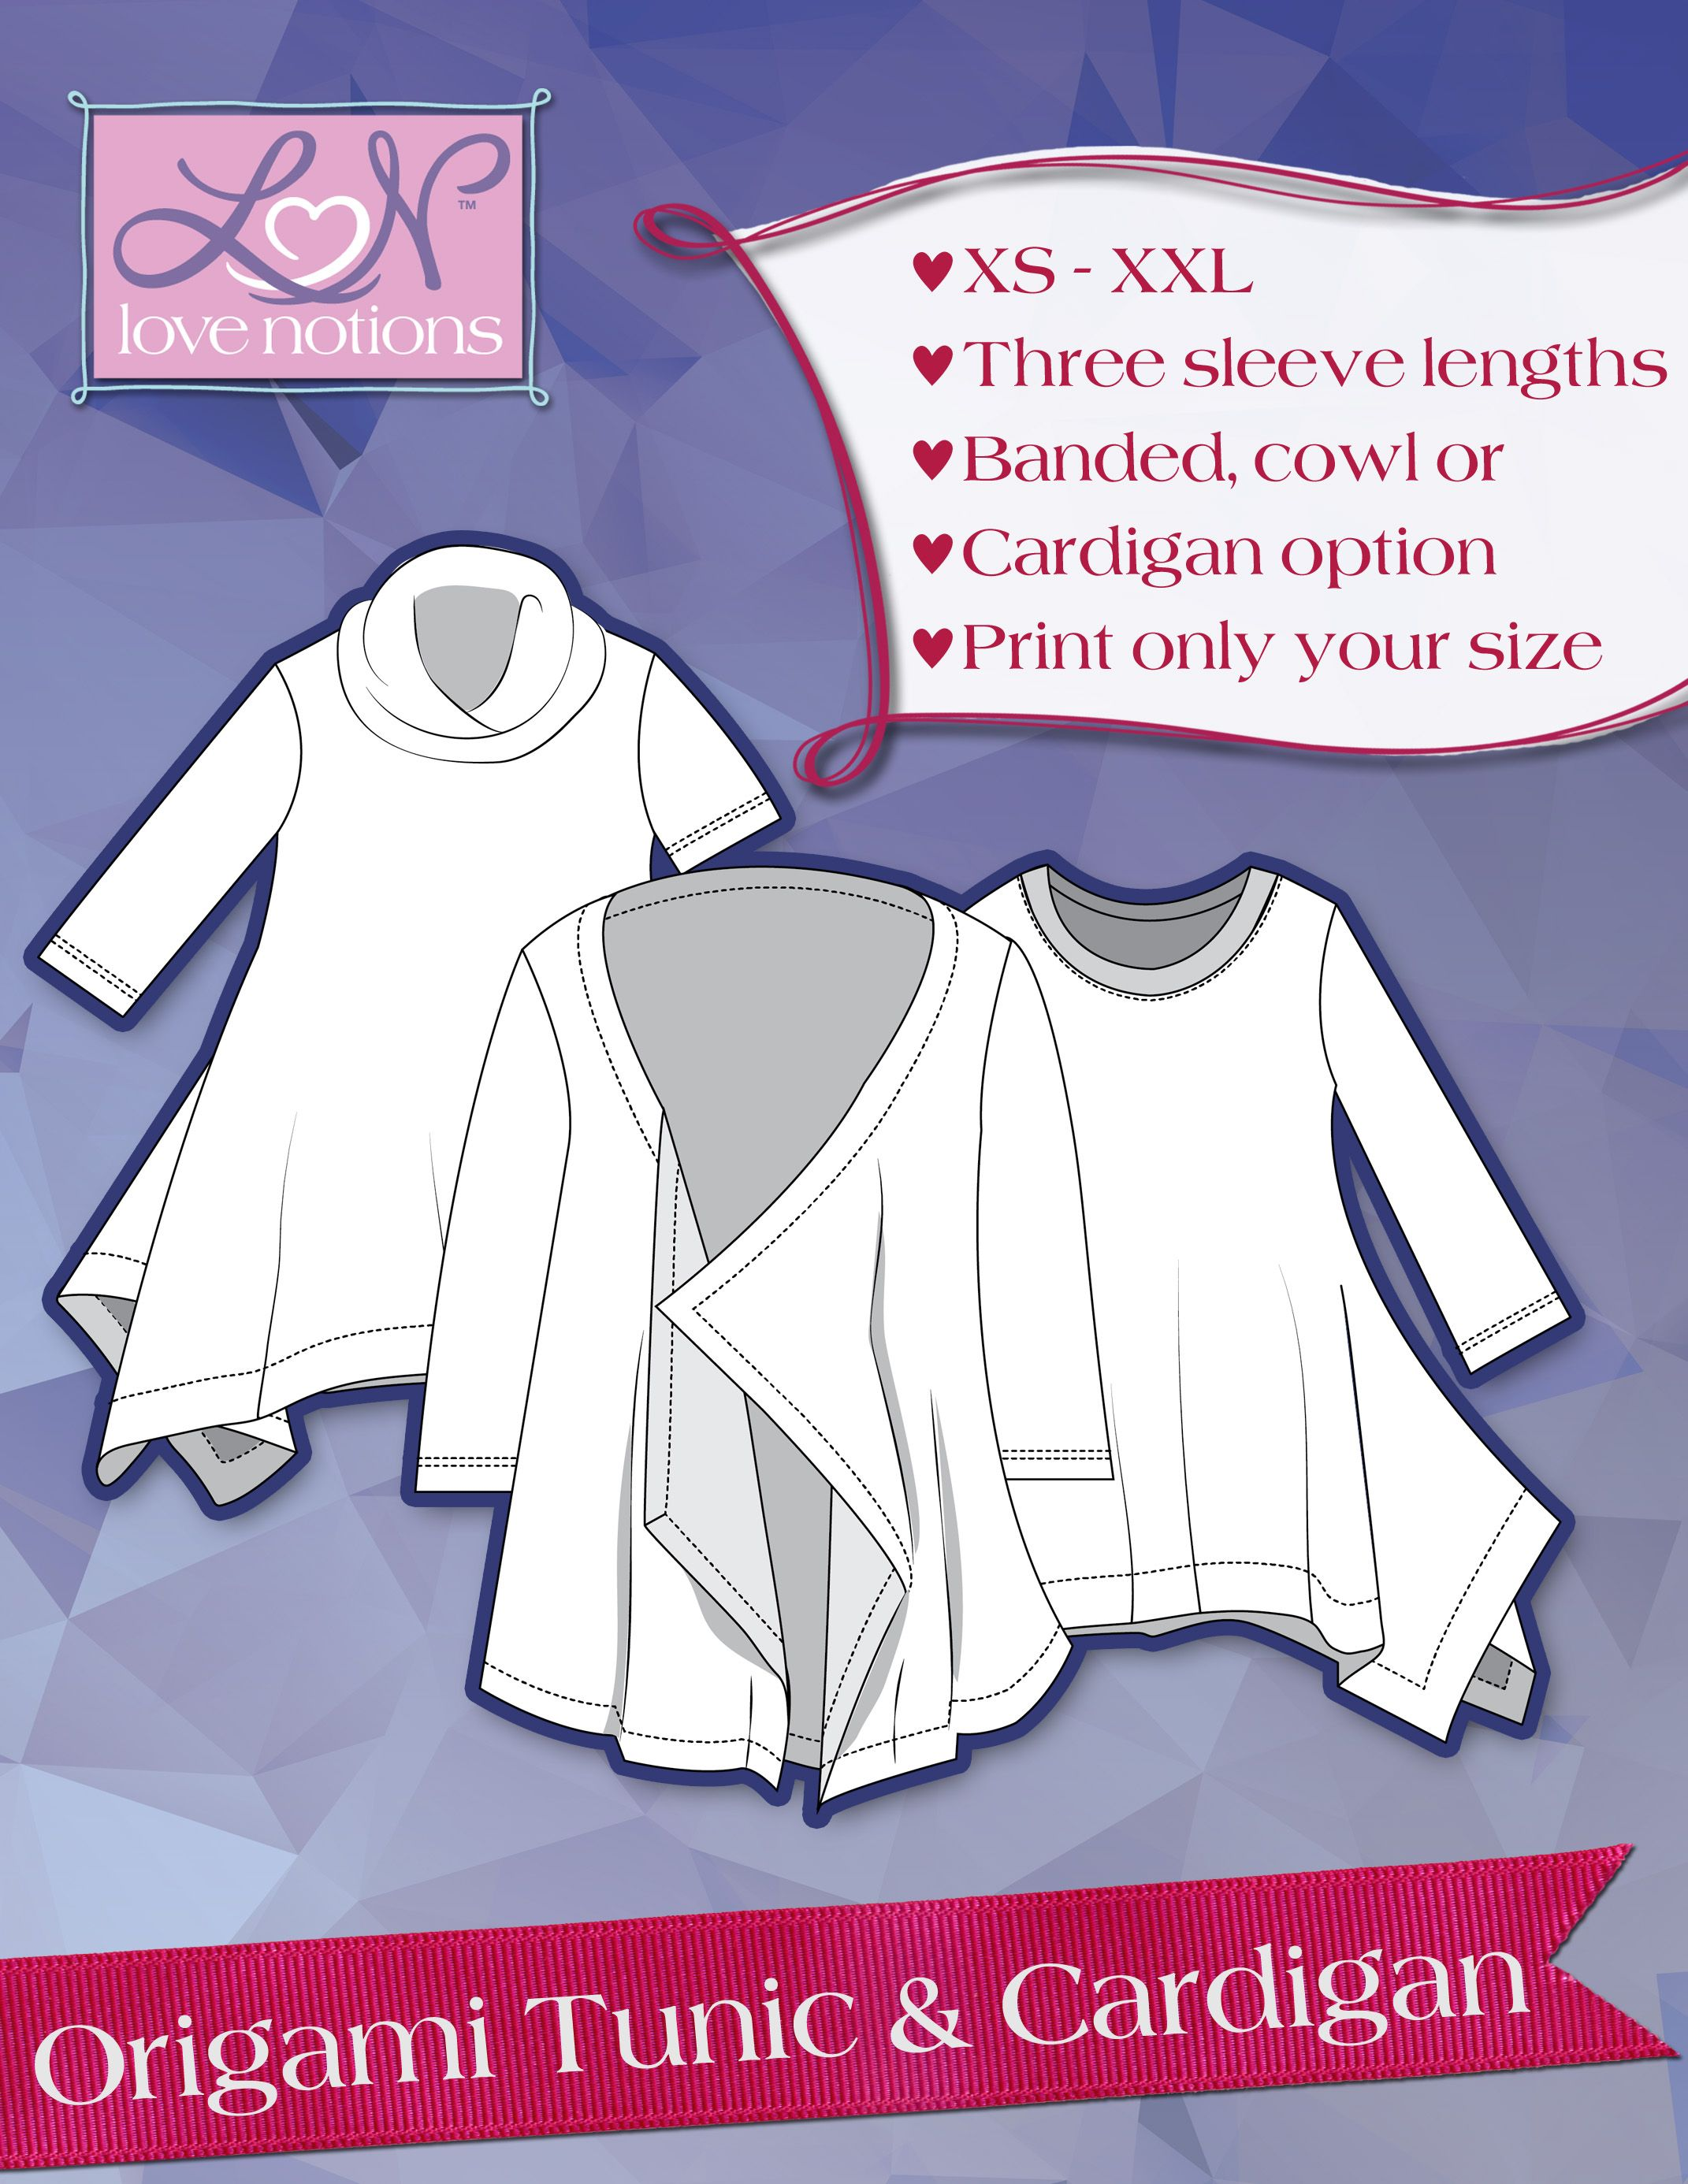 Origami Tunic & Cardigan for Ladies | Love Notions ... - photo#15